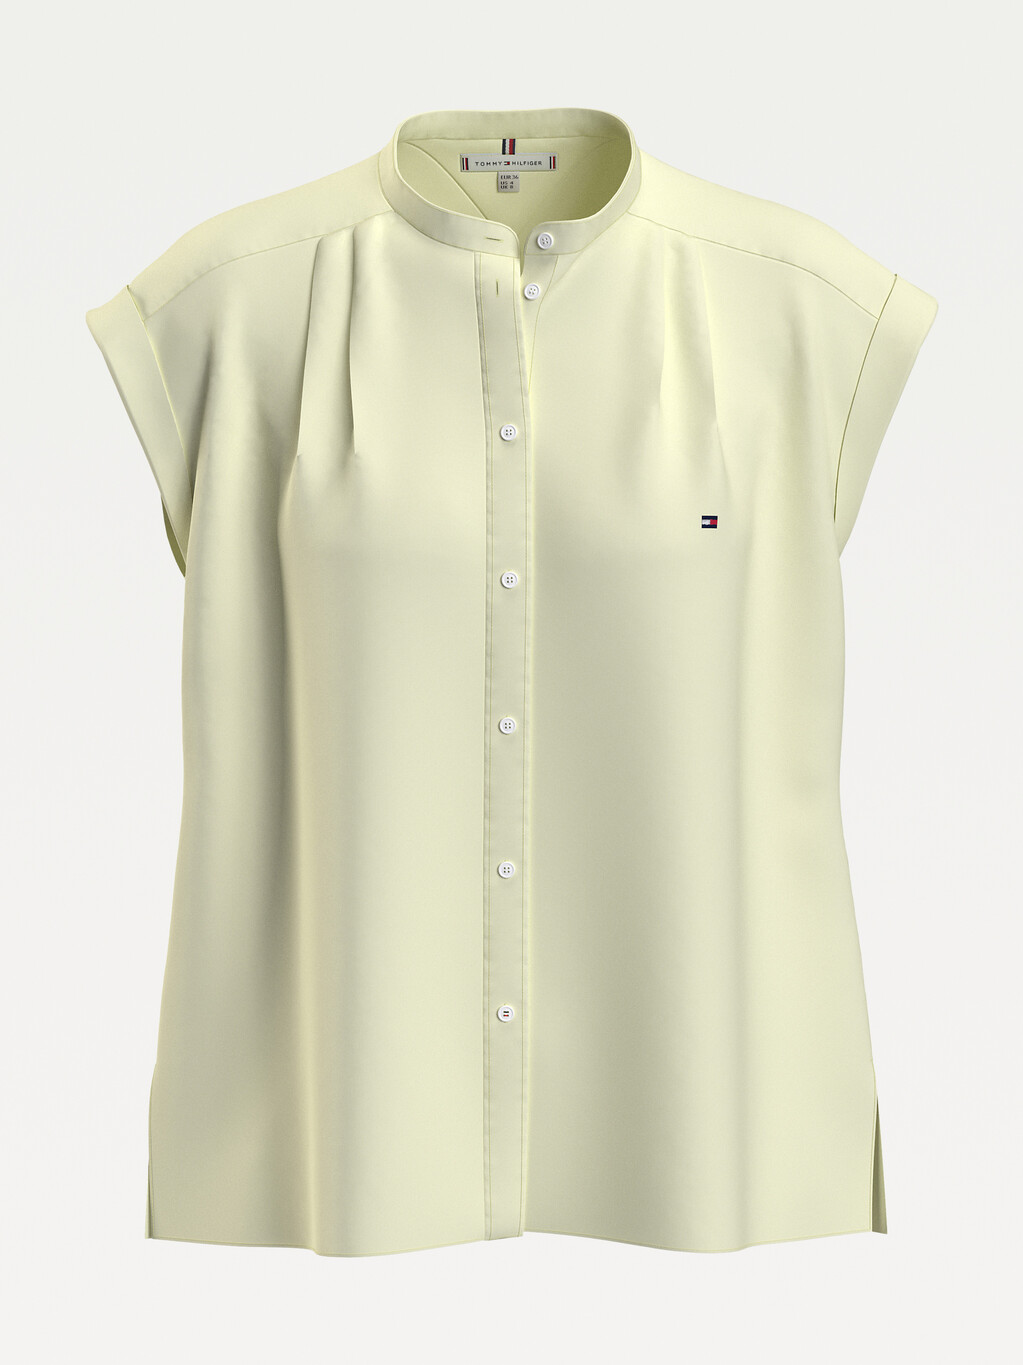 Cap Sleeve Relaxed Fit Oxford Shirt